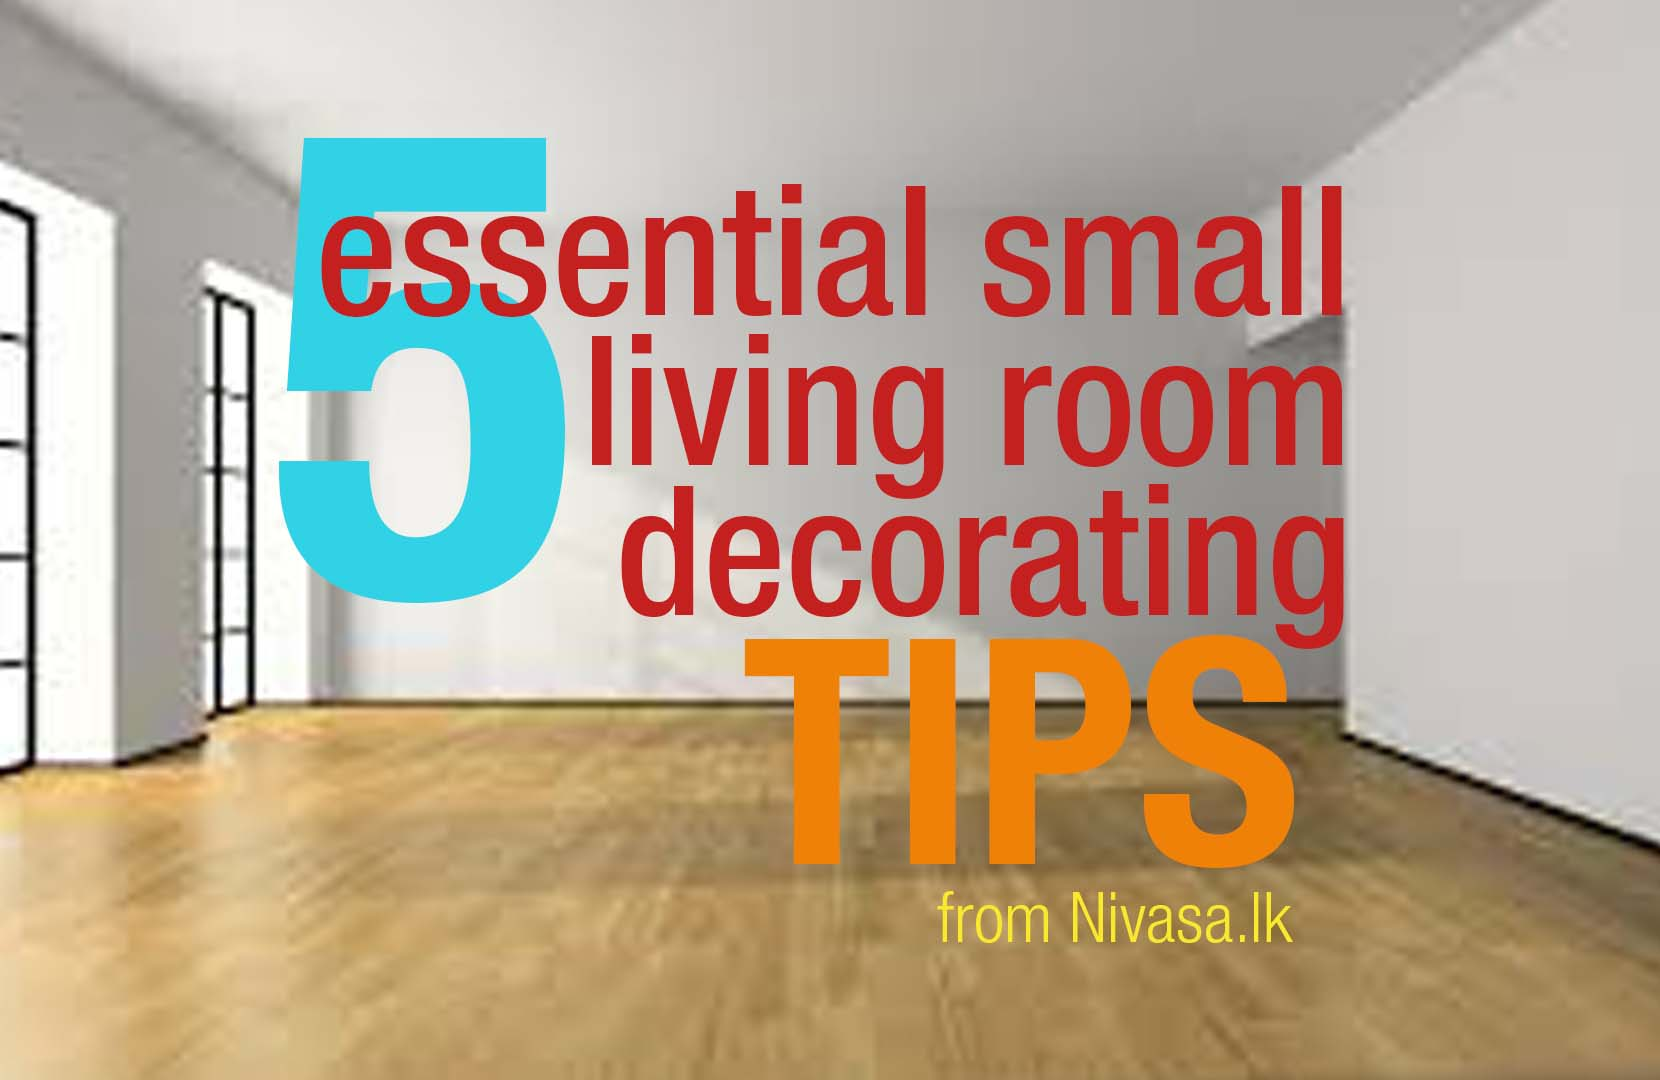 5 essential small living room decorating tips